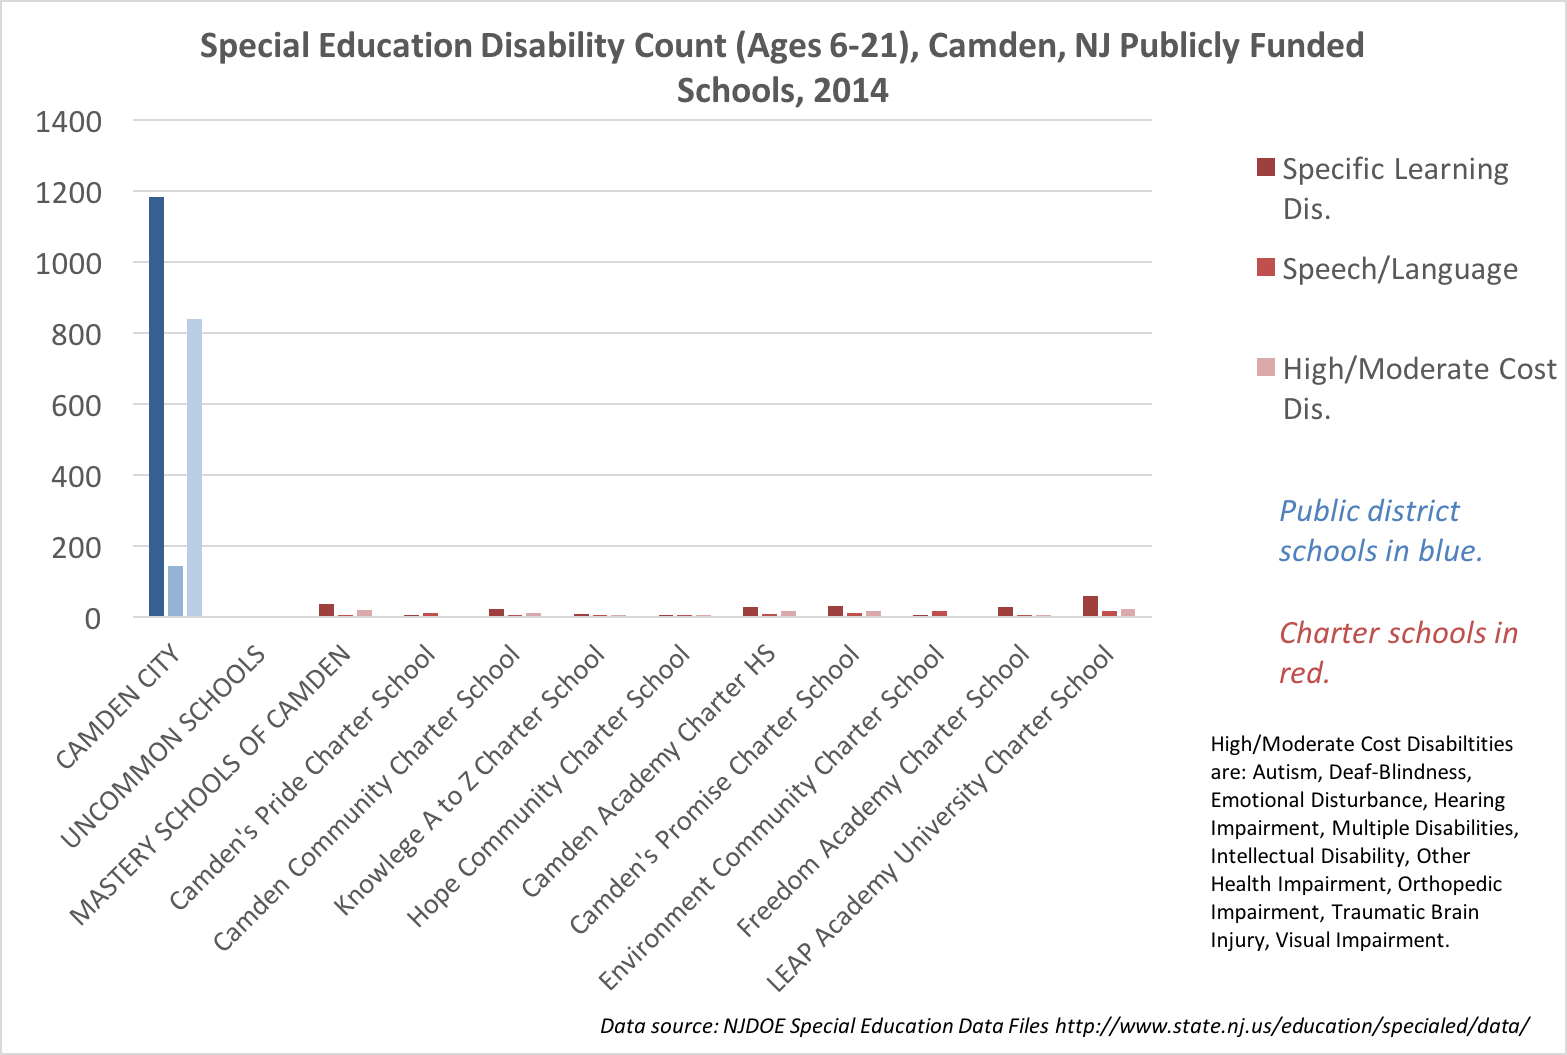 Is the last year for which we have good data on types of learning disabilities students specific slds and also jersey jazzman facts about charter school finances in camden nj rh jerseyjazzmanspot